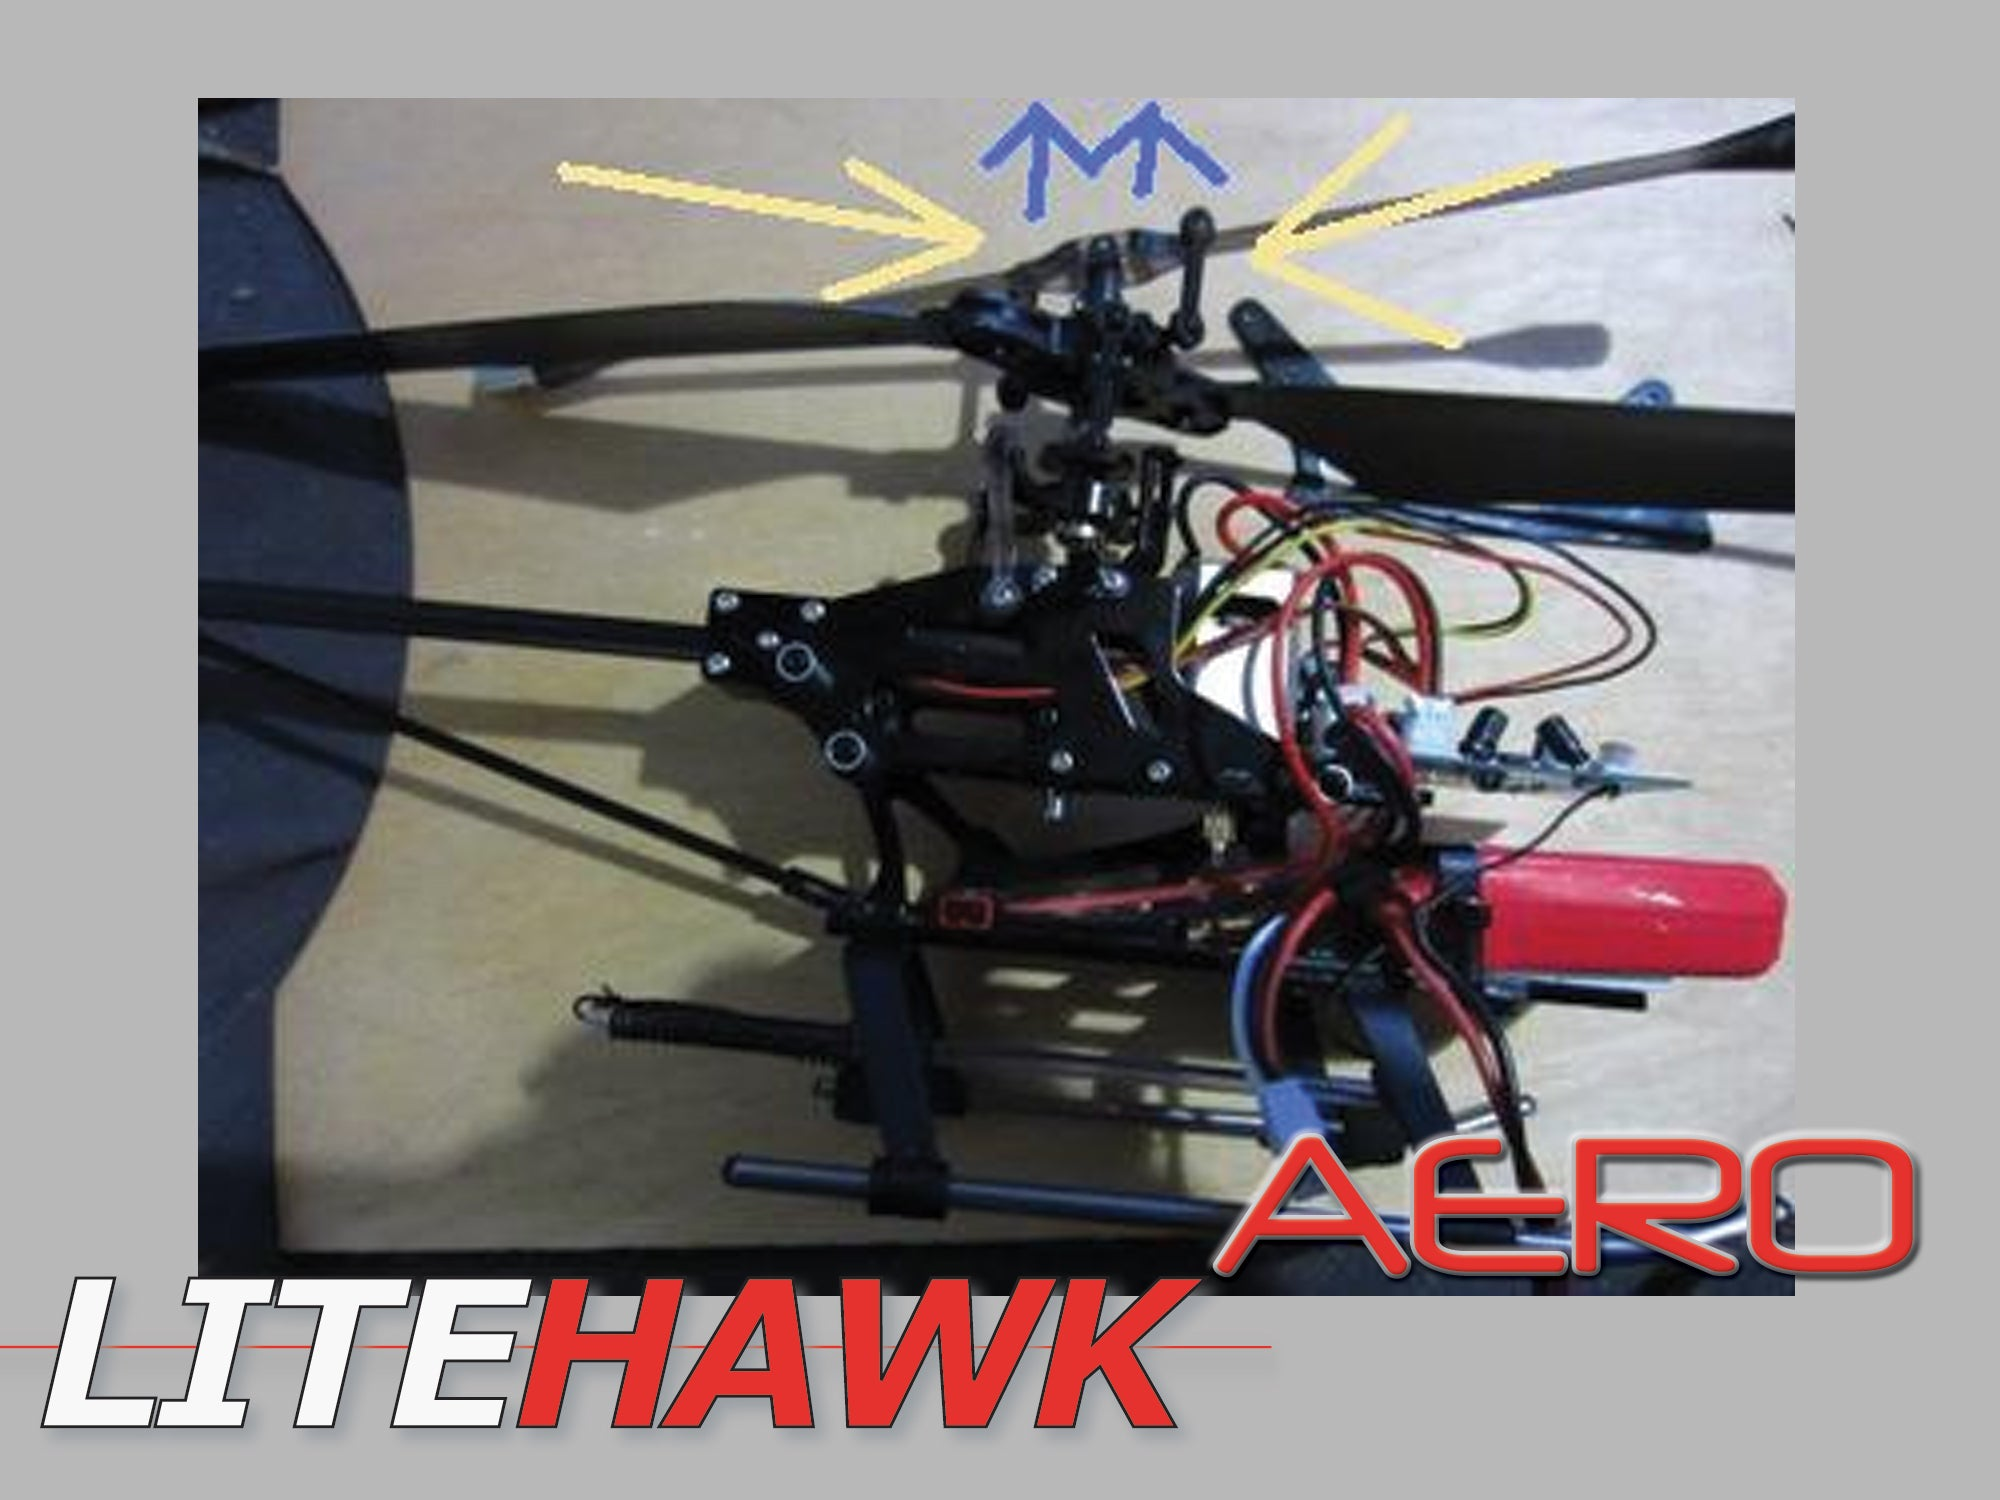 Aero Faq Litehawk Shop Replacement Repair Part Circuit Board For R C Helicopter Radio Control Replacing The Main Gear Start By Removing Canopythen Remove 6 Screws That Secure Outer Chassis Five Indicated In Red